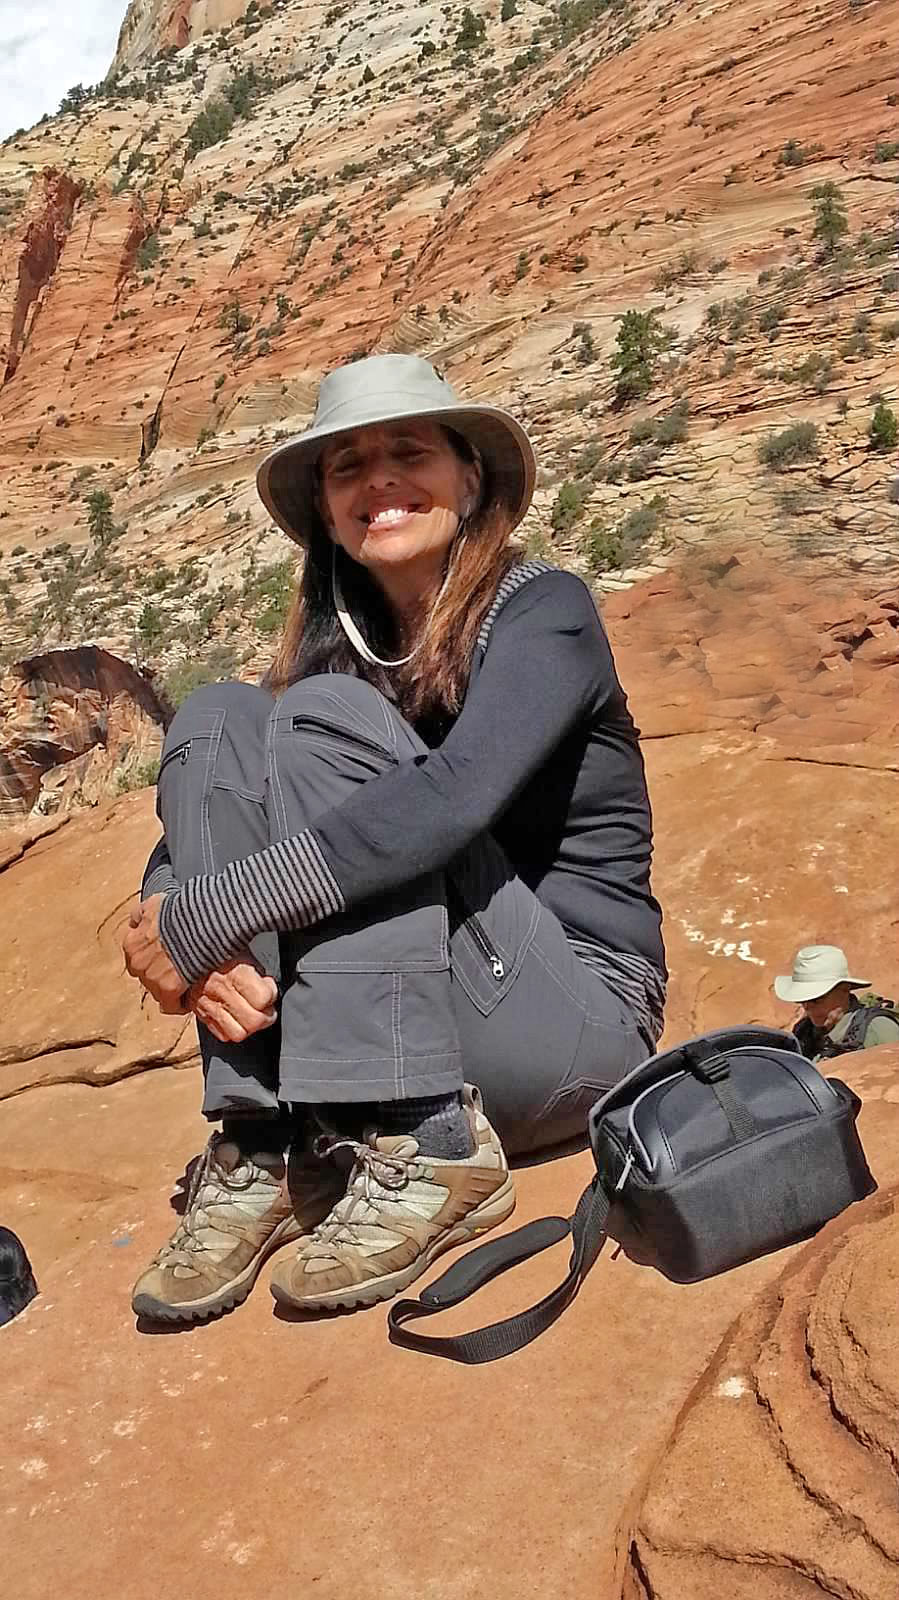 Me in Zion 2015